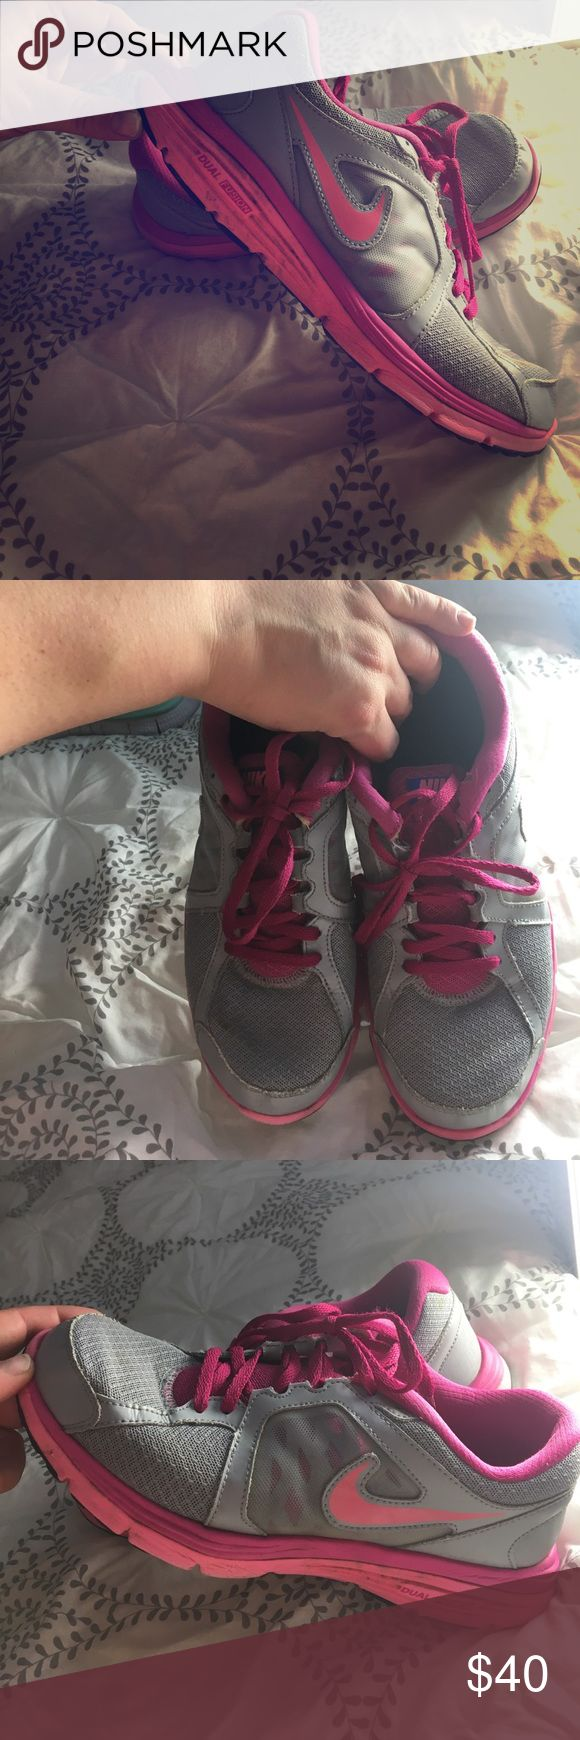 Nike Dual Fusion Run Pink and gray Nike Dual Fusion Run. Size 9 women's. Worn, but good condition Nike Shoes Athletic Shoes